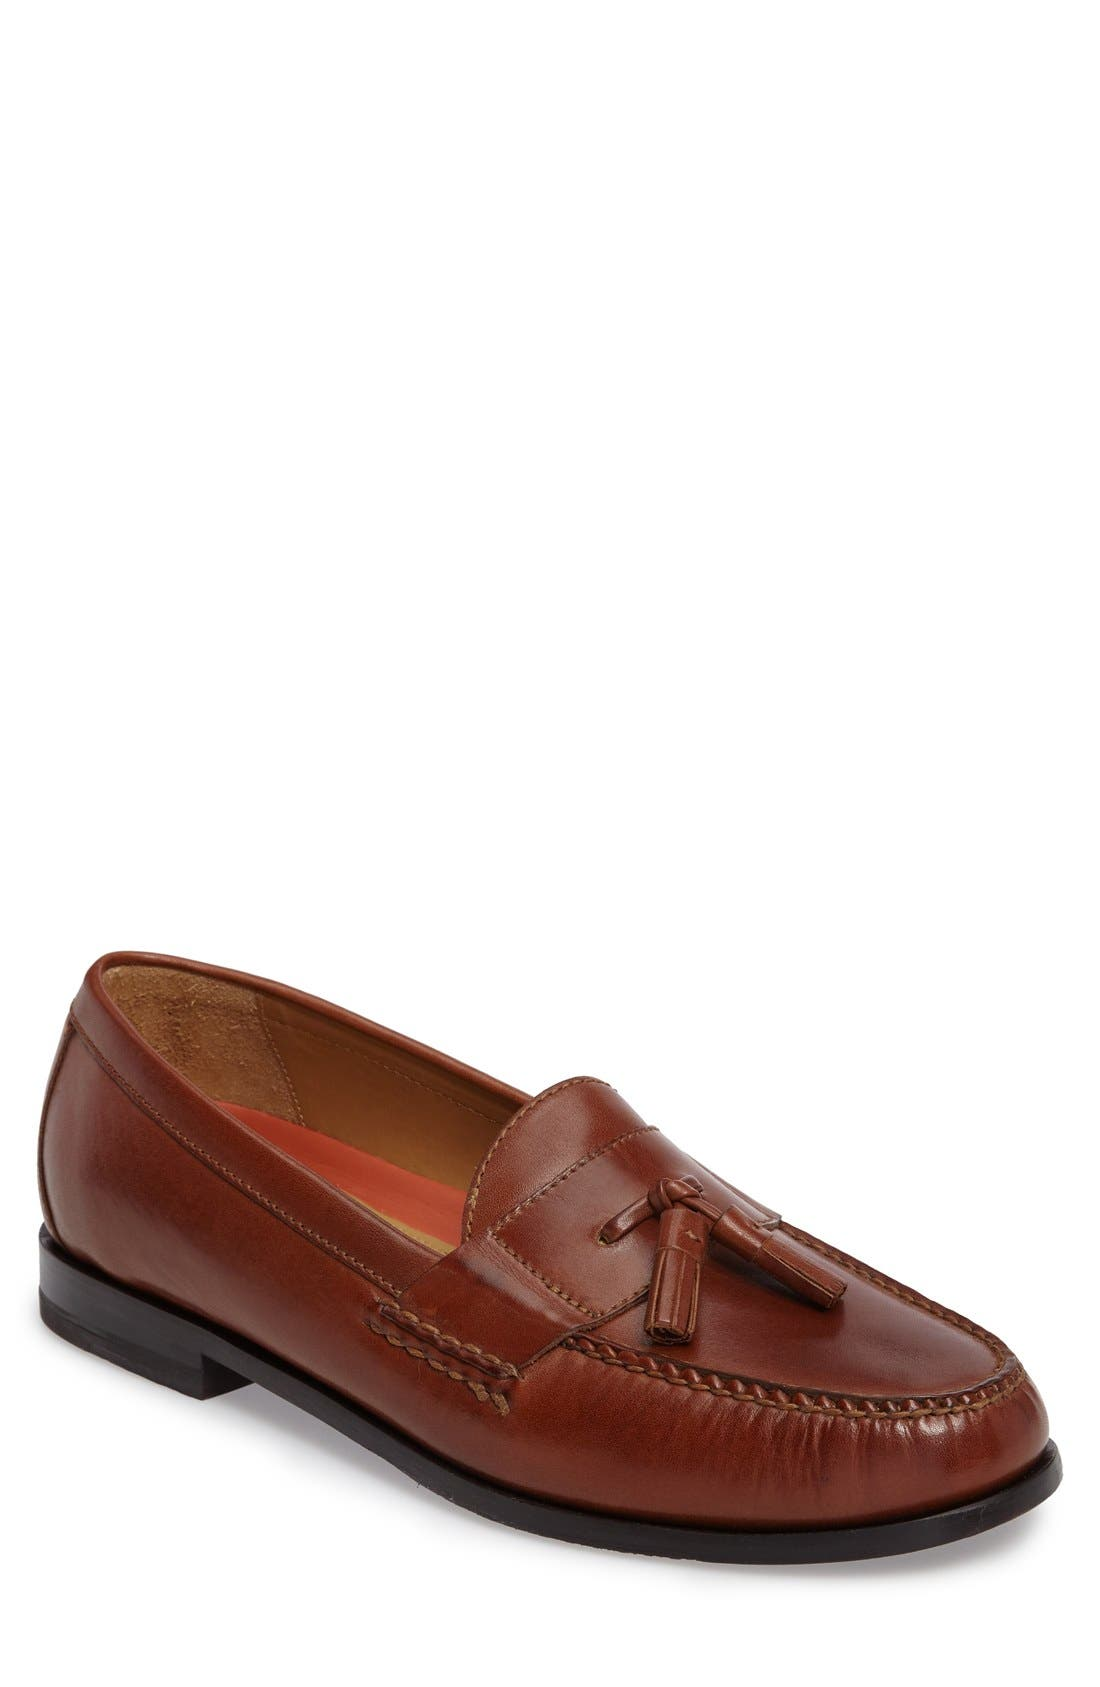 'Pinch Grand' Tassel Loafer,                         Main,                         color, Papaya Leather